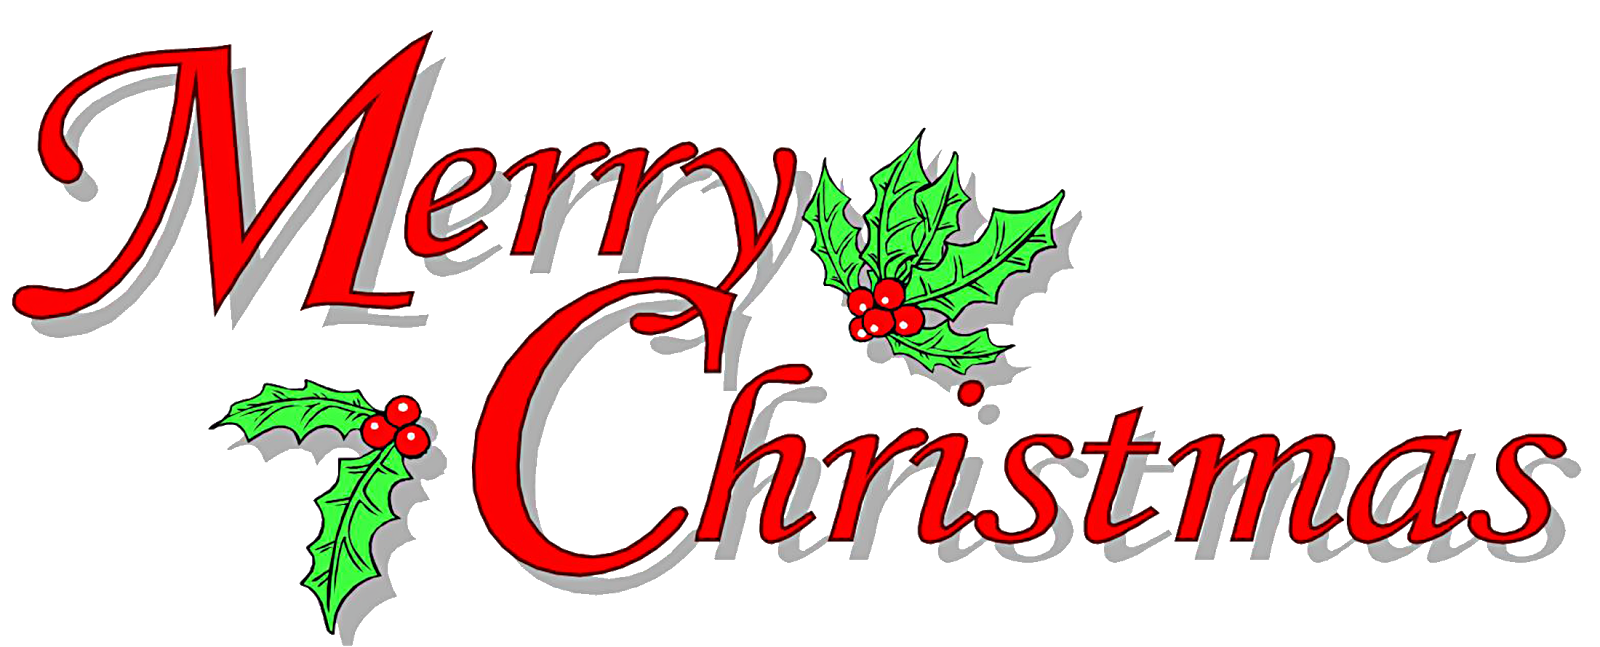 Text clipart merry christmas Clipart text photo clipart 2